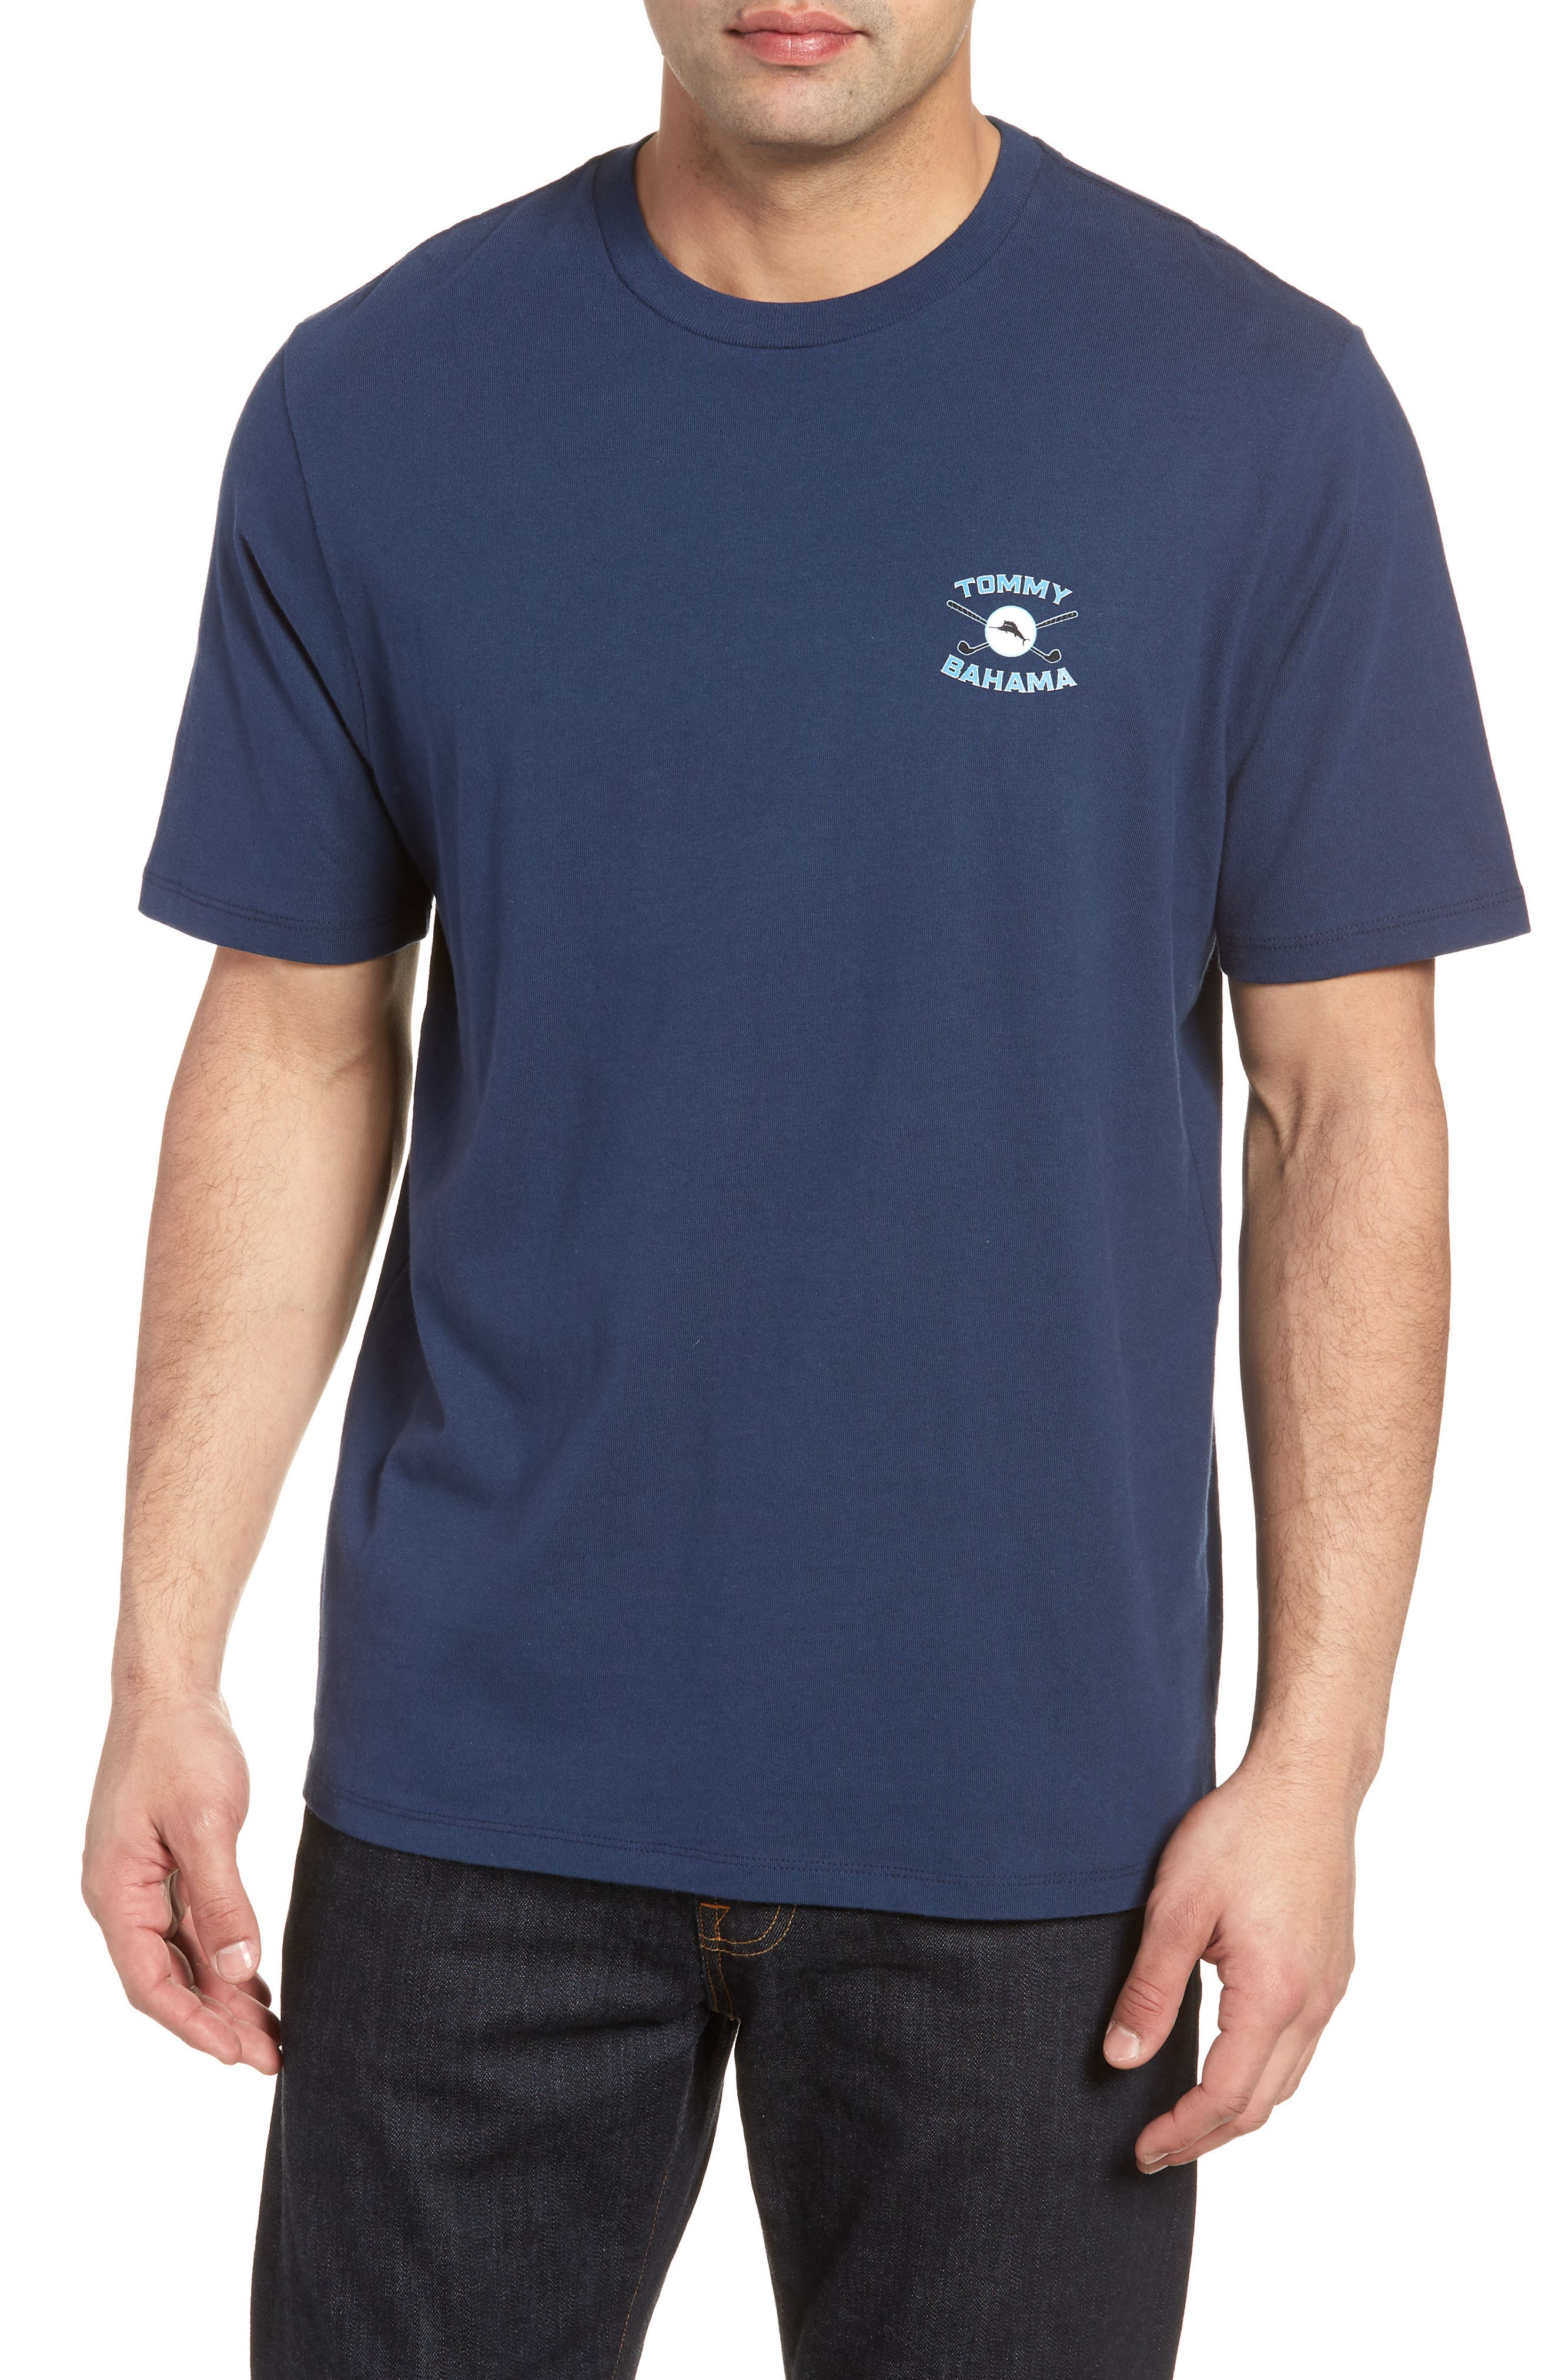 TOMMY BAHAMA The Lawn Ranger T-Shirt, Main, color, 400